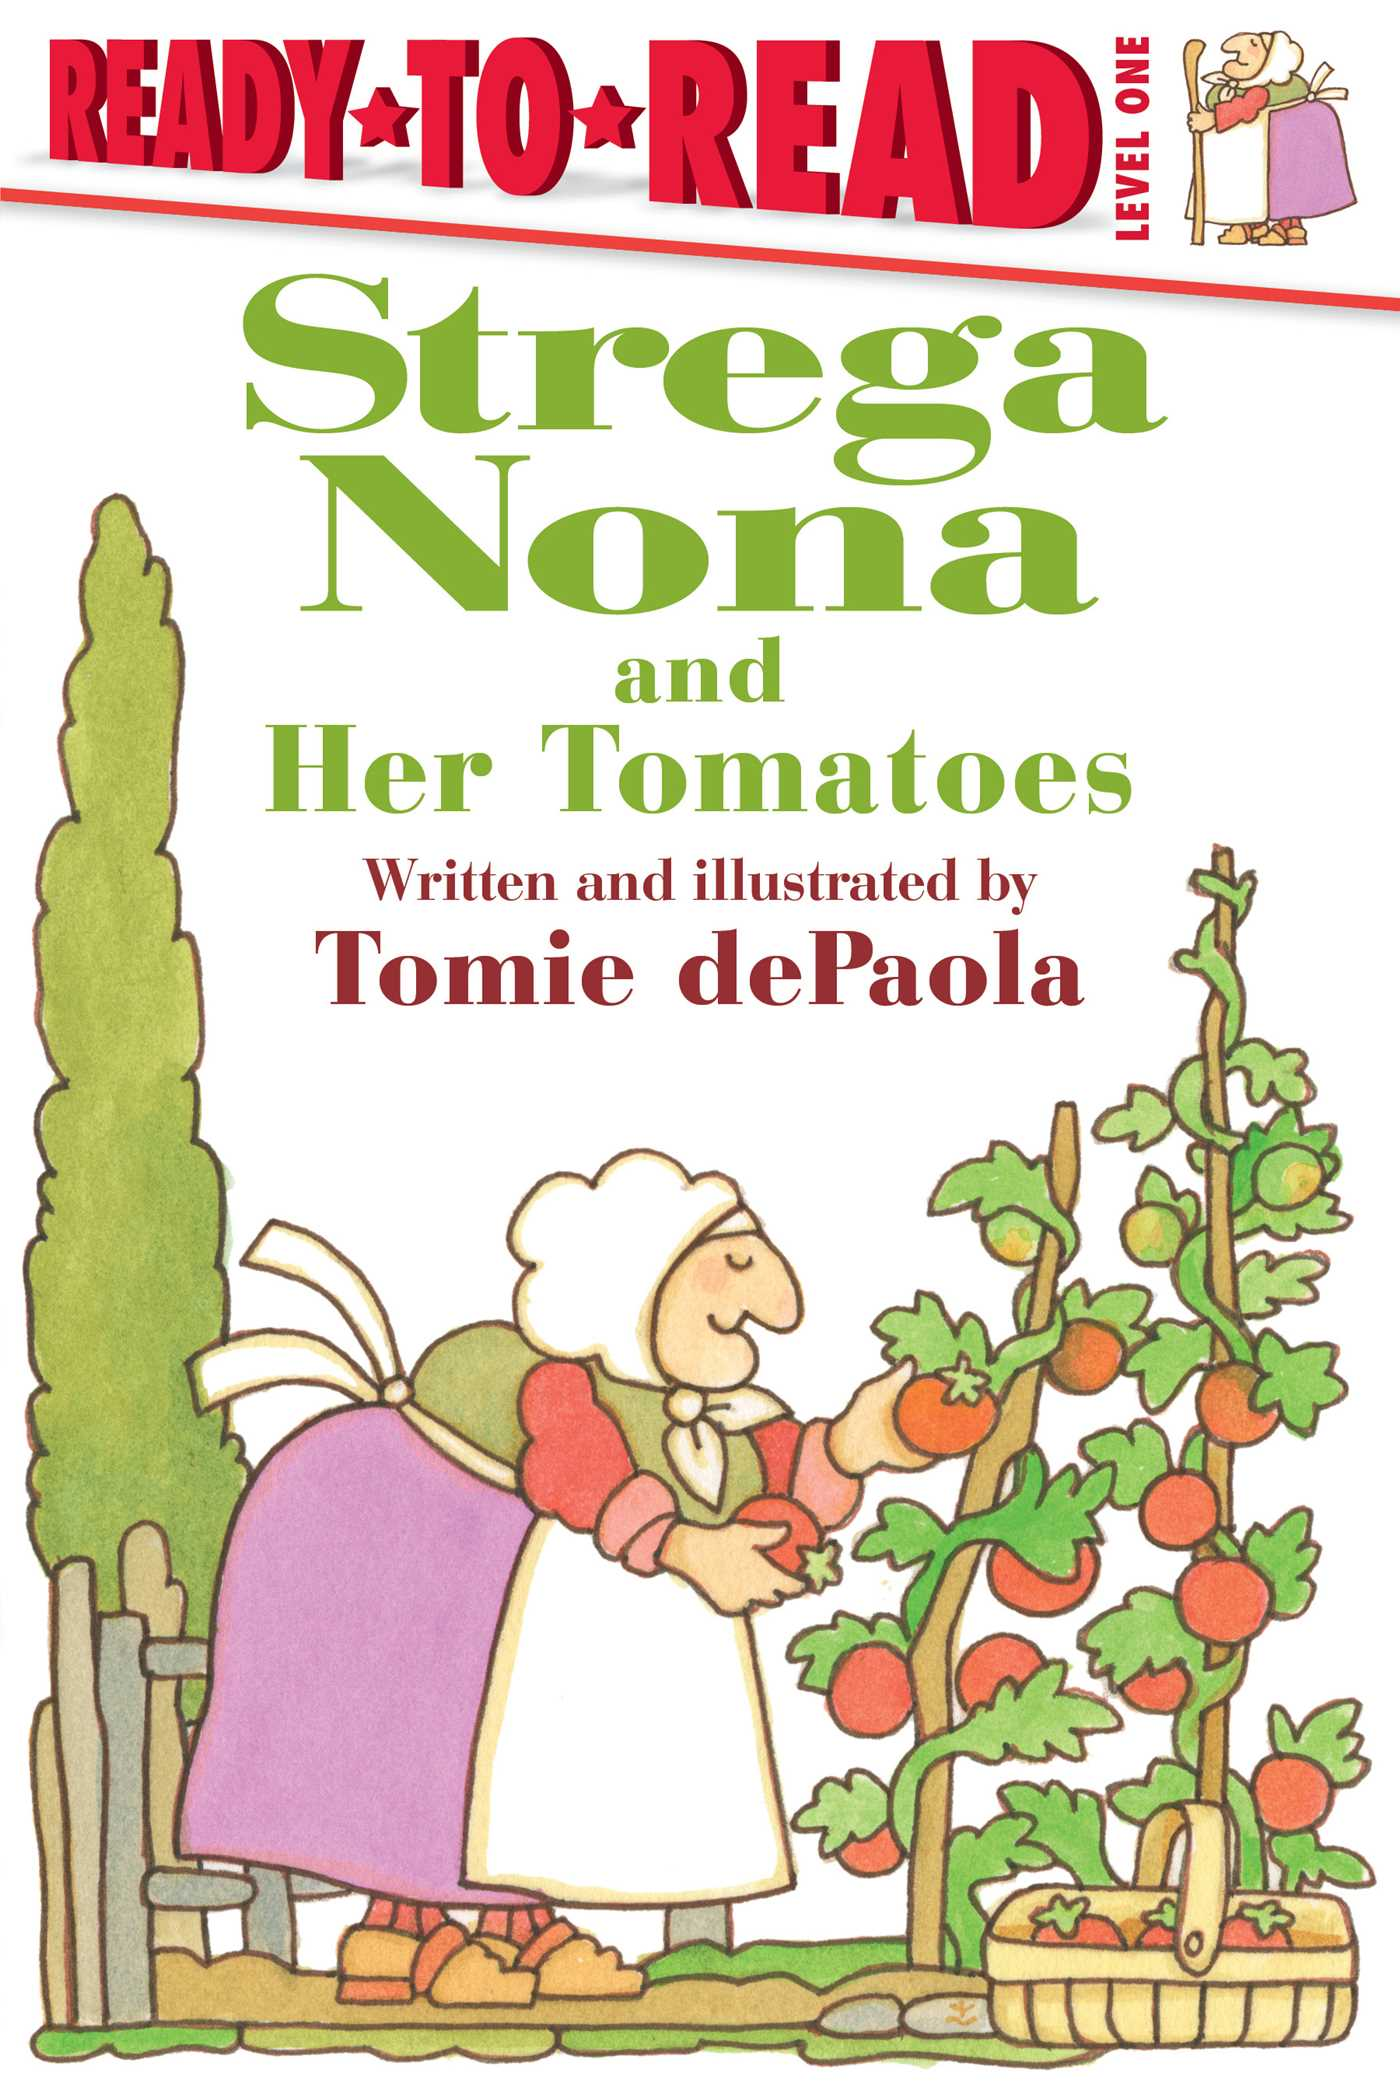 Strega nona and her tomatoes 9781481481342 hr